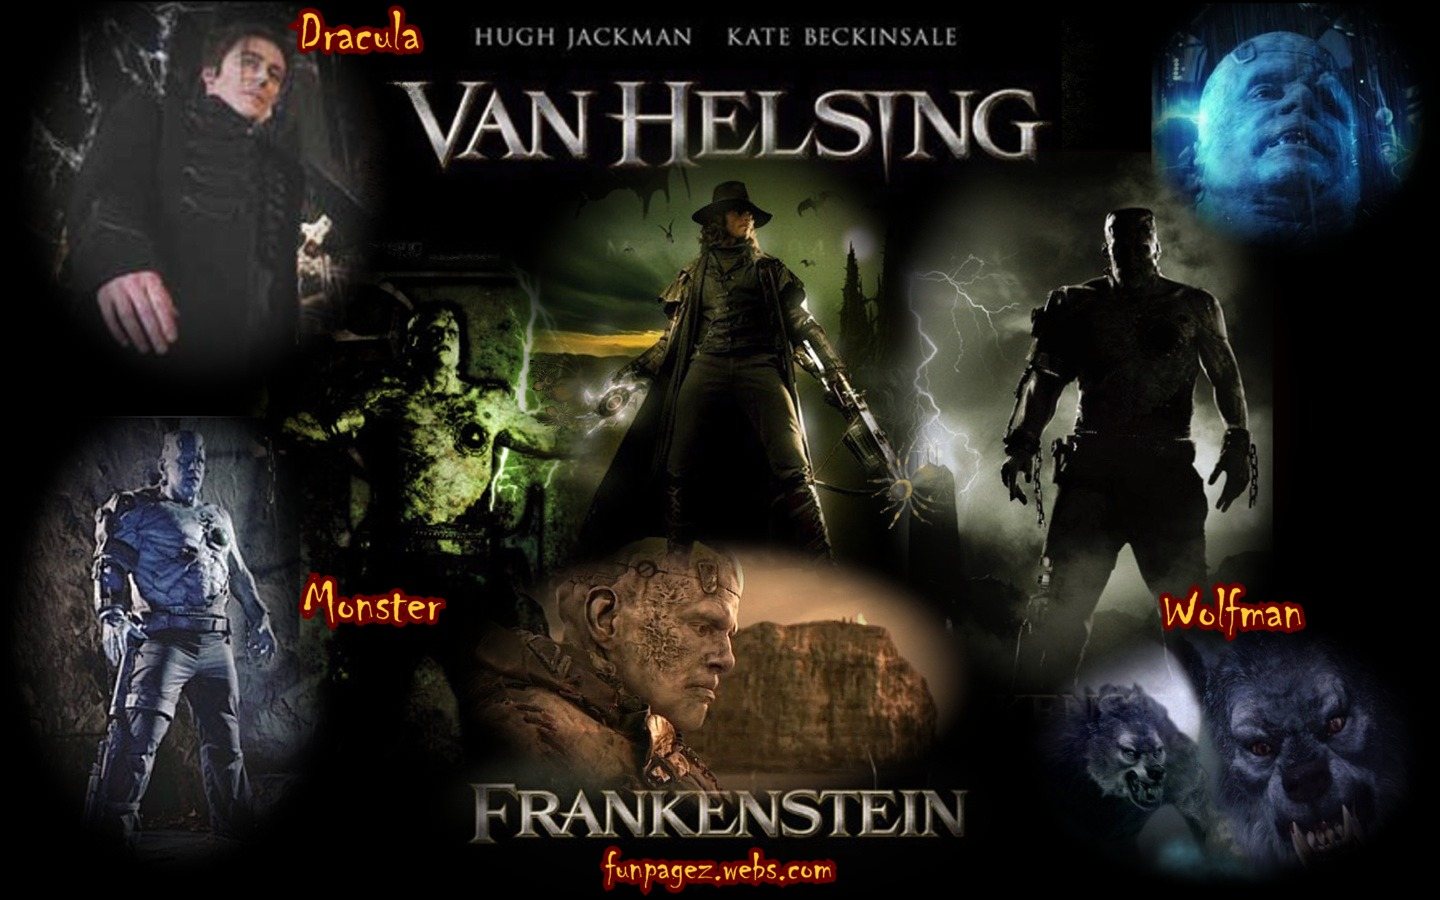 Van Helsing 2 1440 x 900 ResolutionRight click to set as background 1440x900